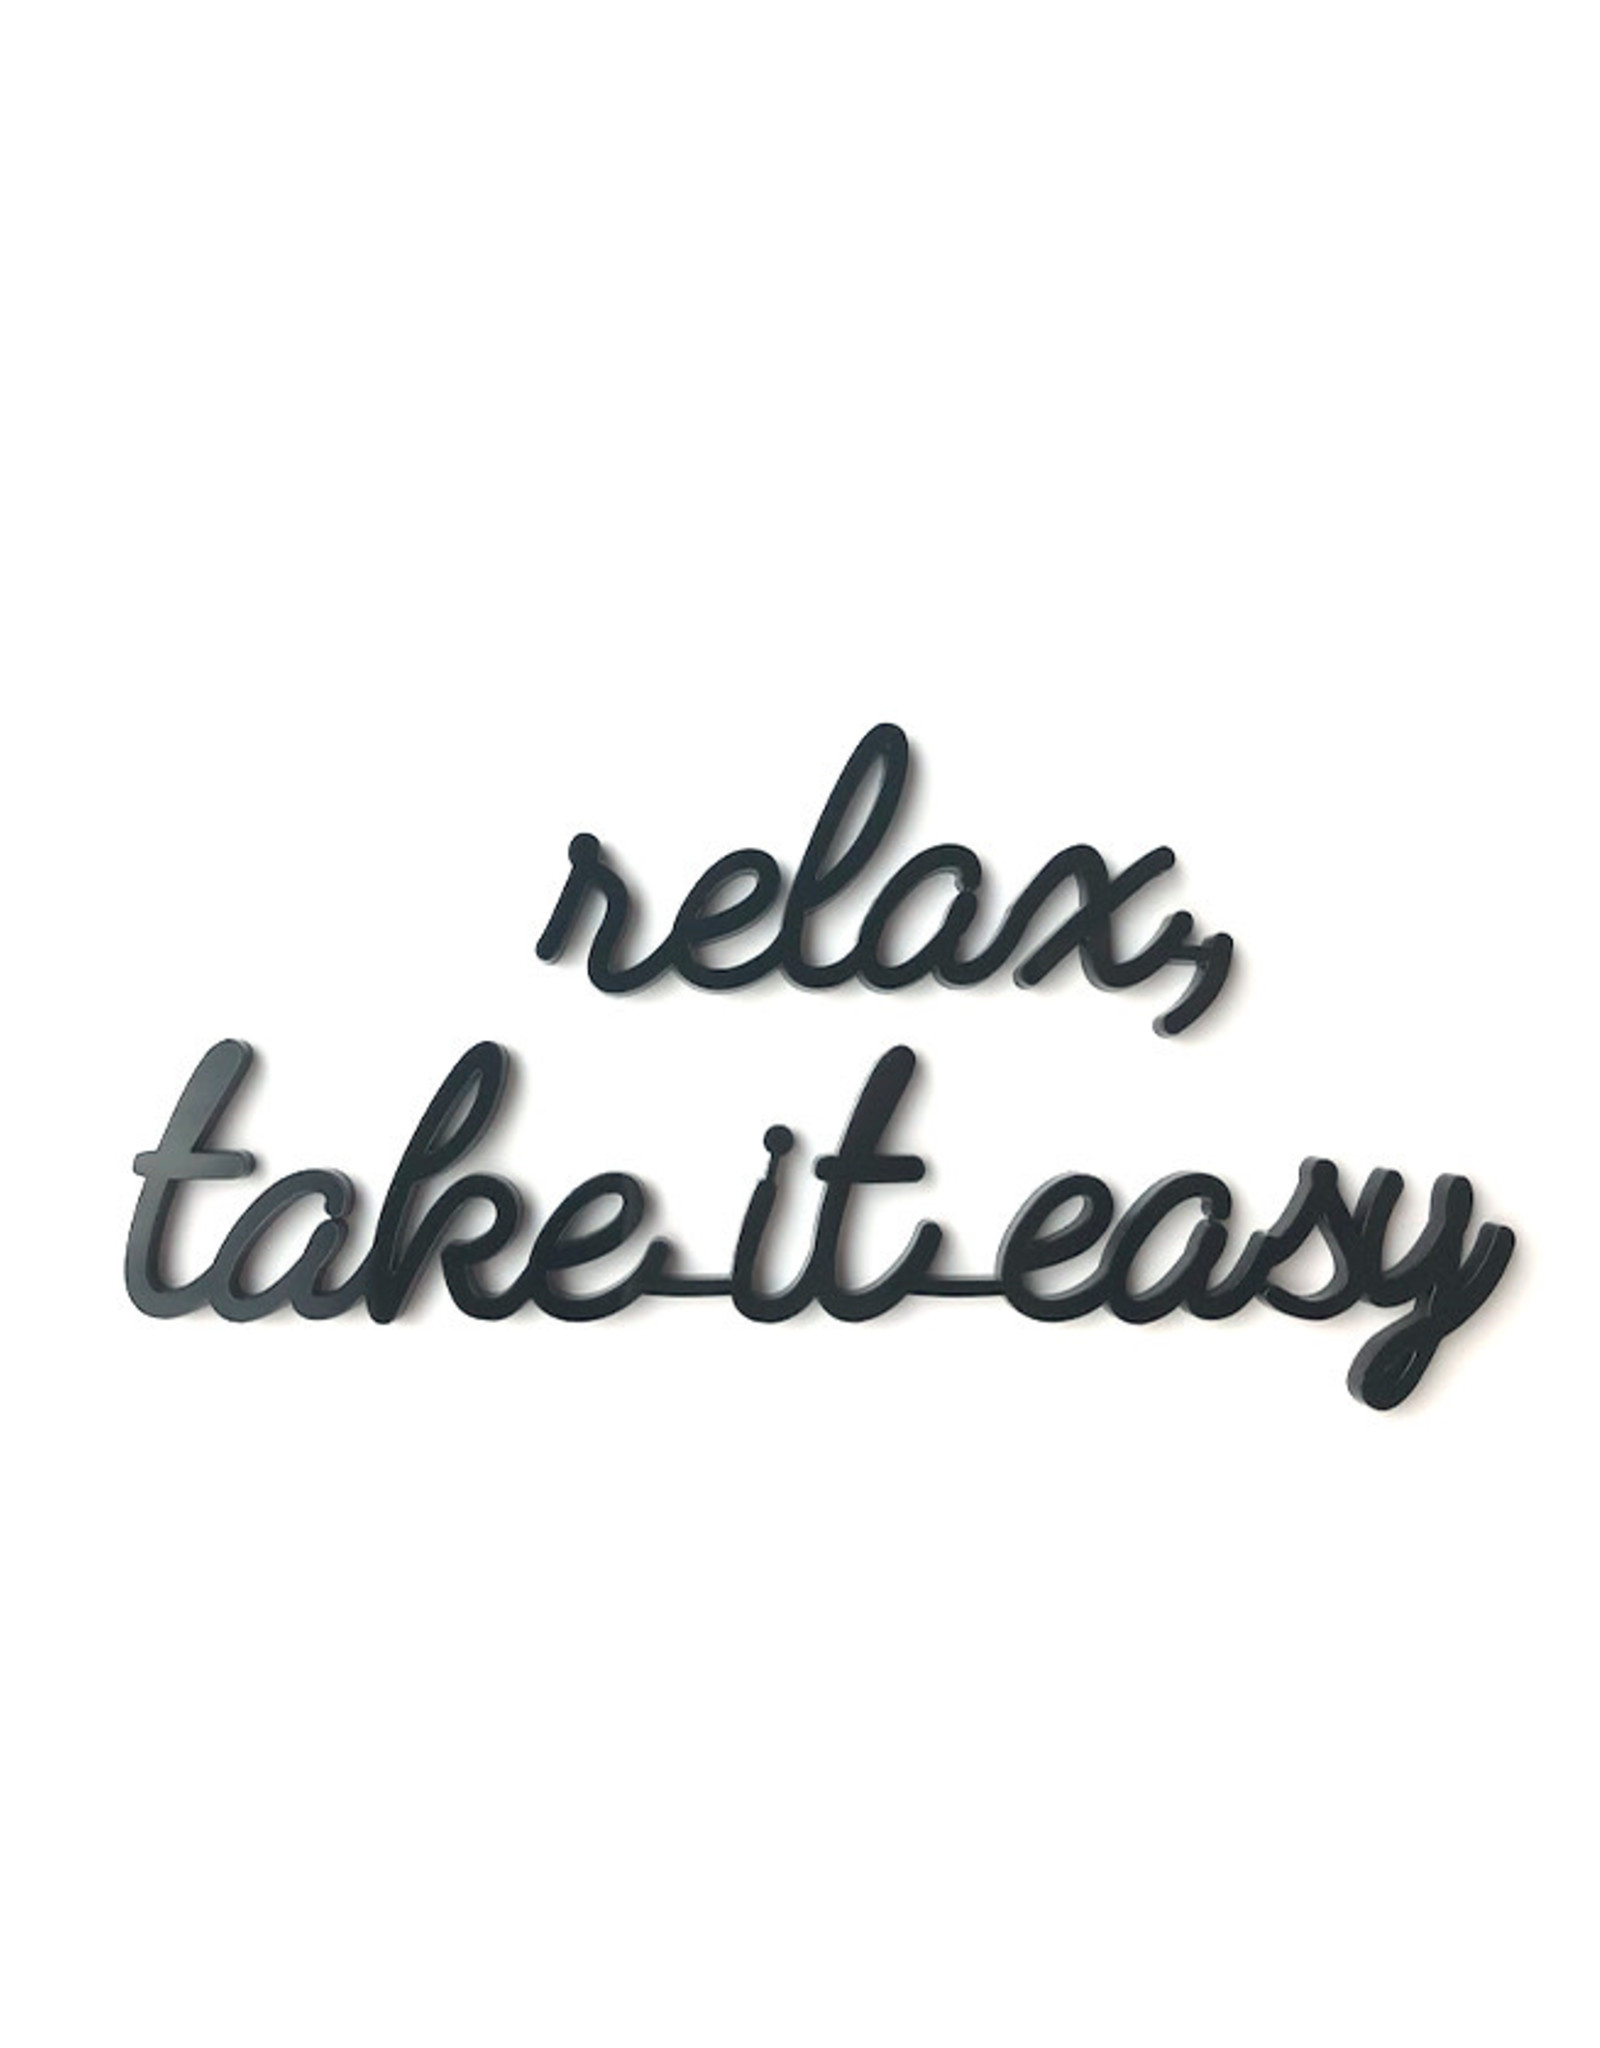 Goegezegd Quote Relax, take it easy-black